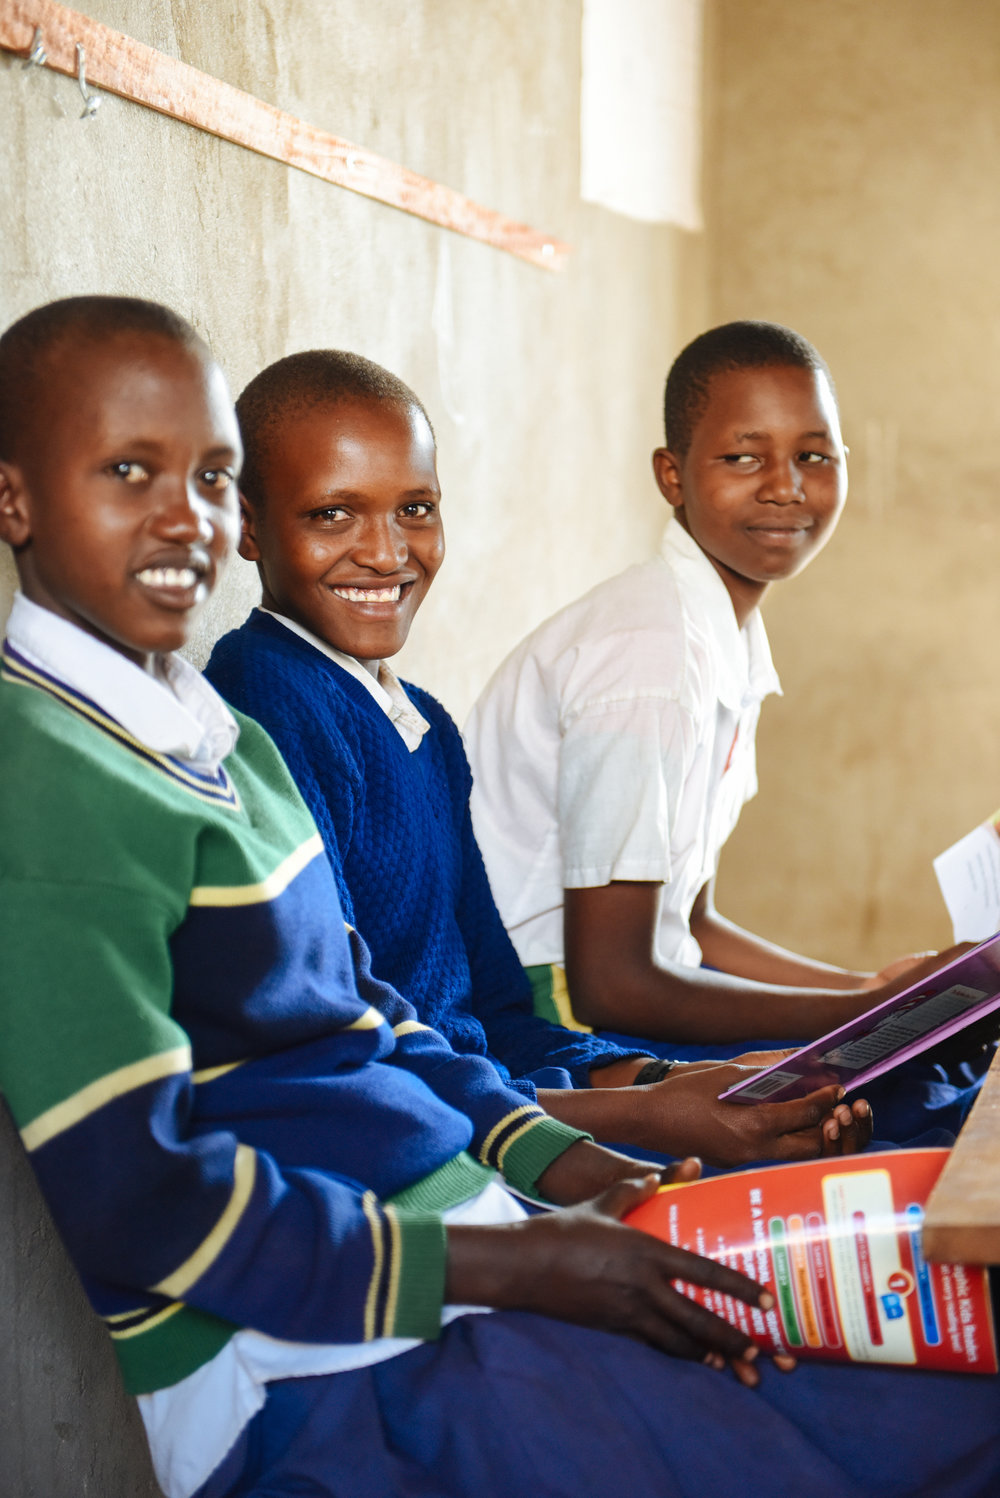 Martha, center, smiles during her Standard 7 class at Mlima Shabaha School.